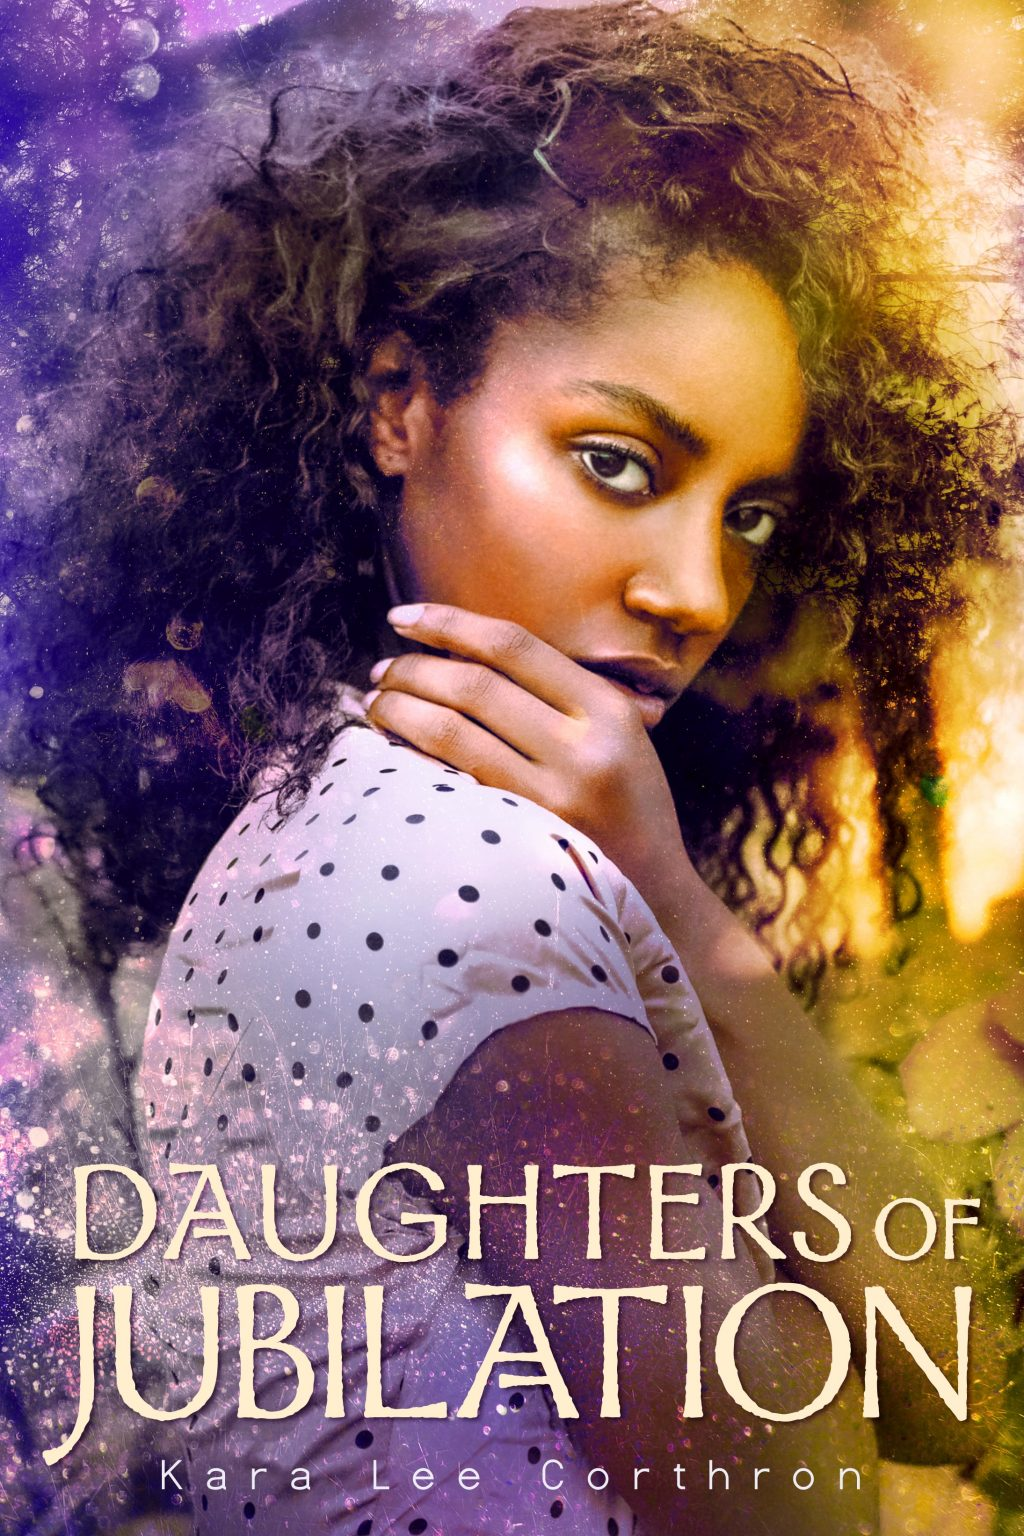 Daughters-of-Jubilation-1024x1536.jpg